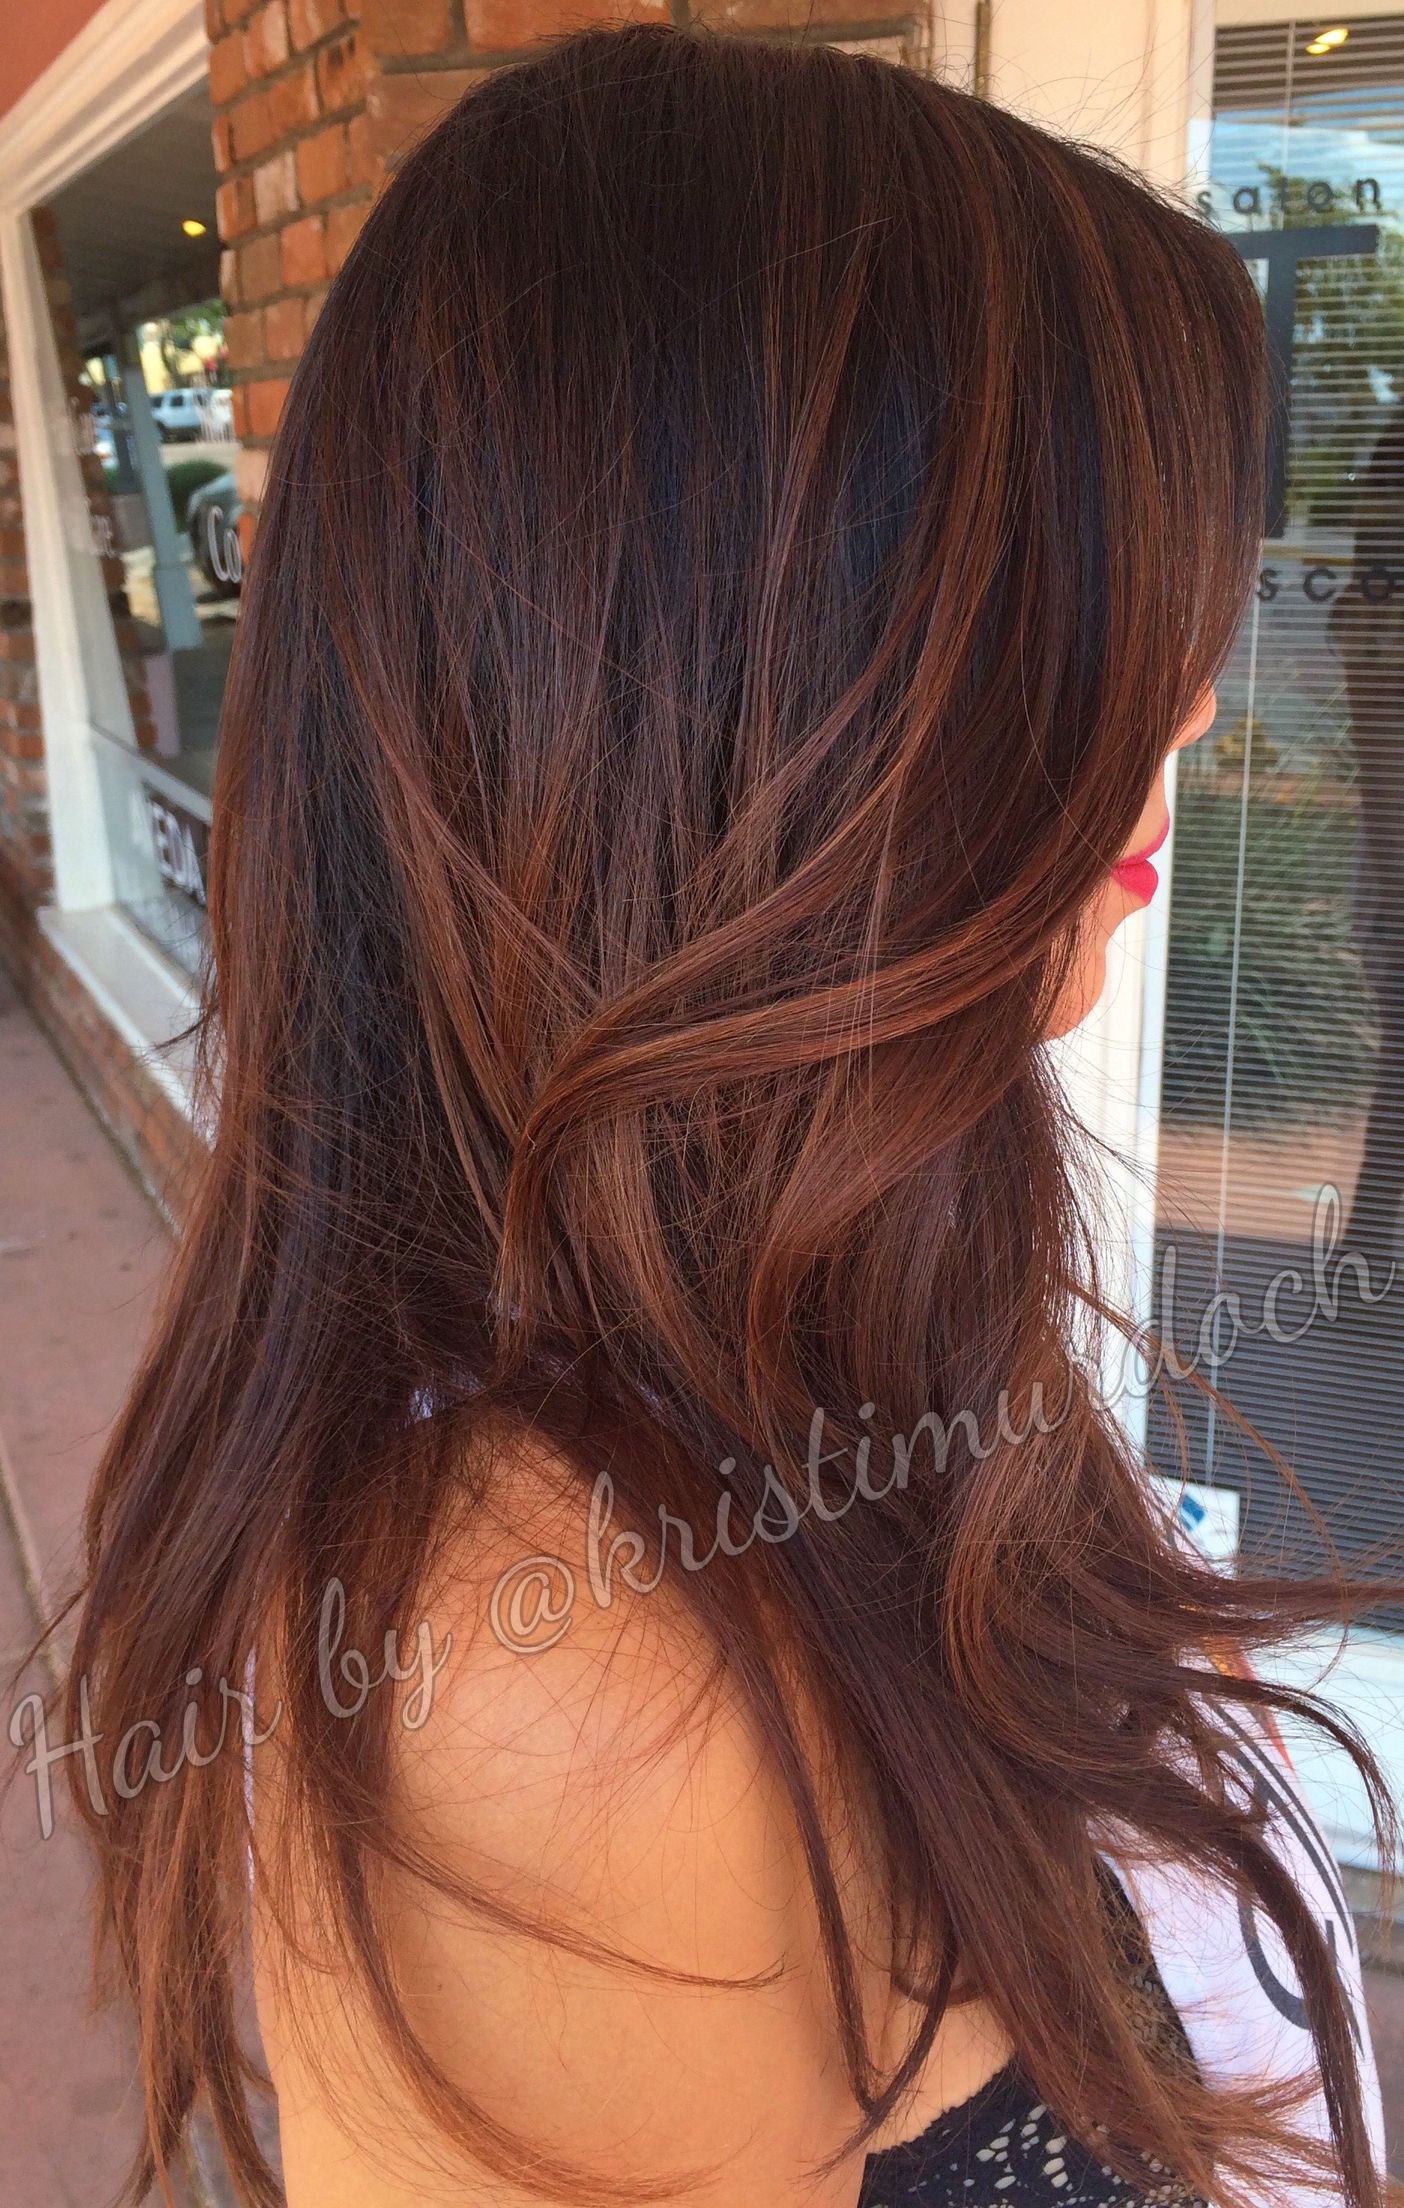 Balayage ombre salon Tru scottsdale brunette caramel hair color